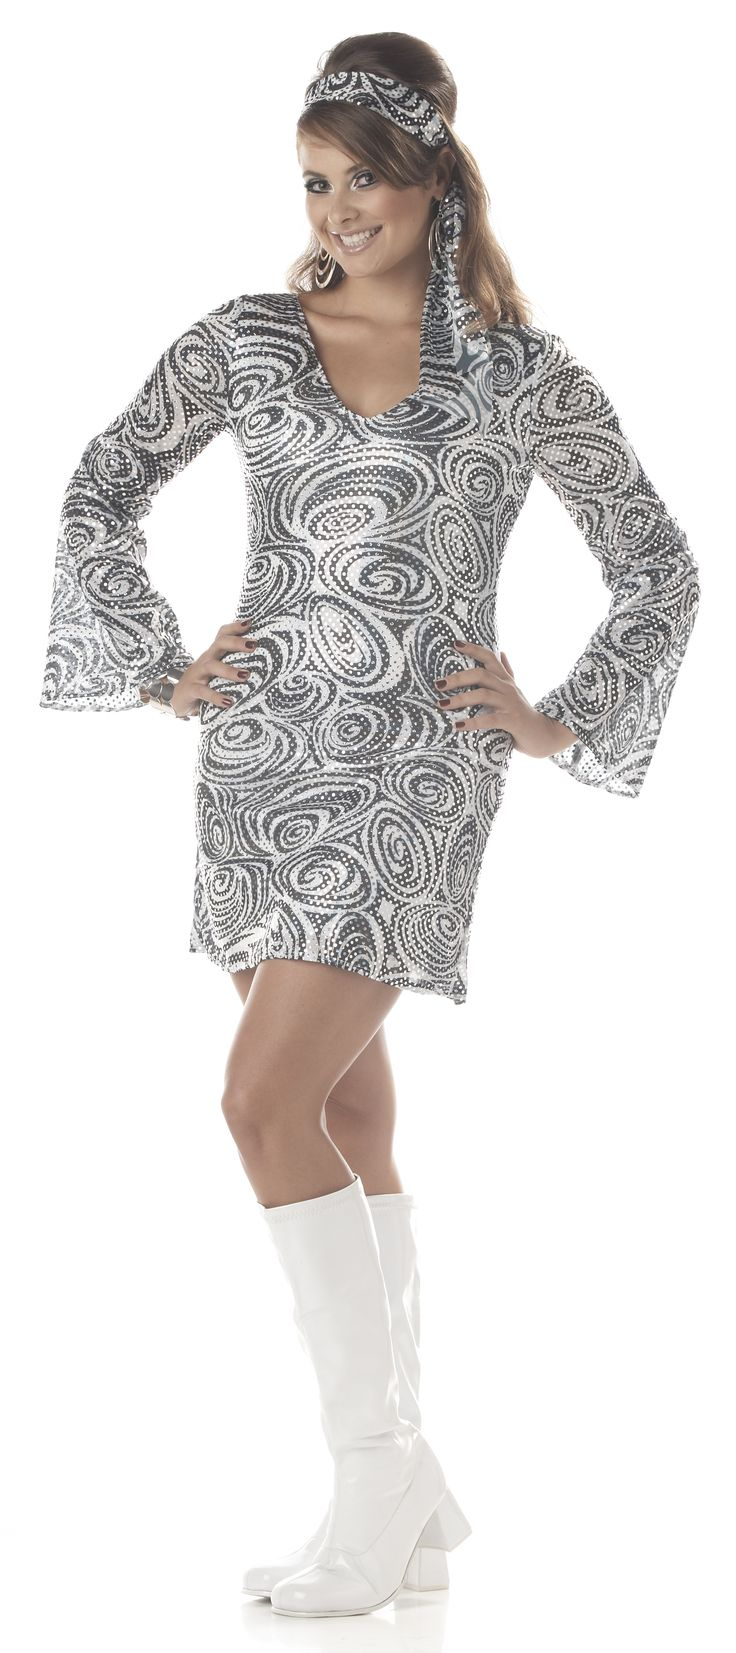 Disco Diva Plus Size Go Go Dress - Go Go in this sassy plus size ladies dress. Recreate the 60s Mod gogo in this plus size dress. This dress has a wonderfully creative swirl black and white pattern to it. Over the fabric is silver sparkly dots giving it a disco ball shine. The sleeves of the dress are flared and the neckline is a v-neck. The dress is about thigh length. #costume #yyc #calgary #retro #1960s #austinpowers #plussize #gogo